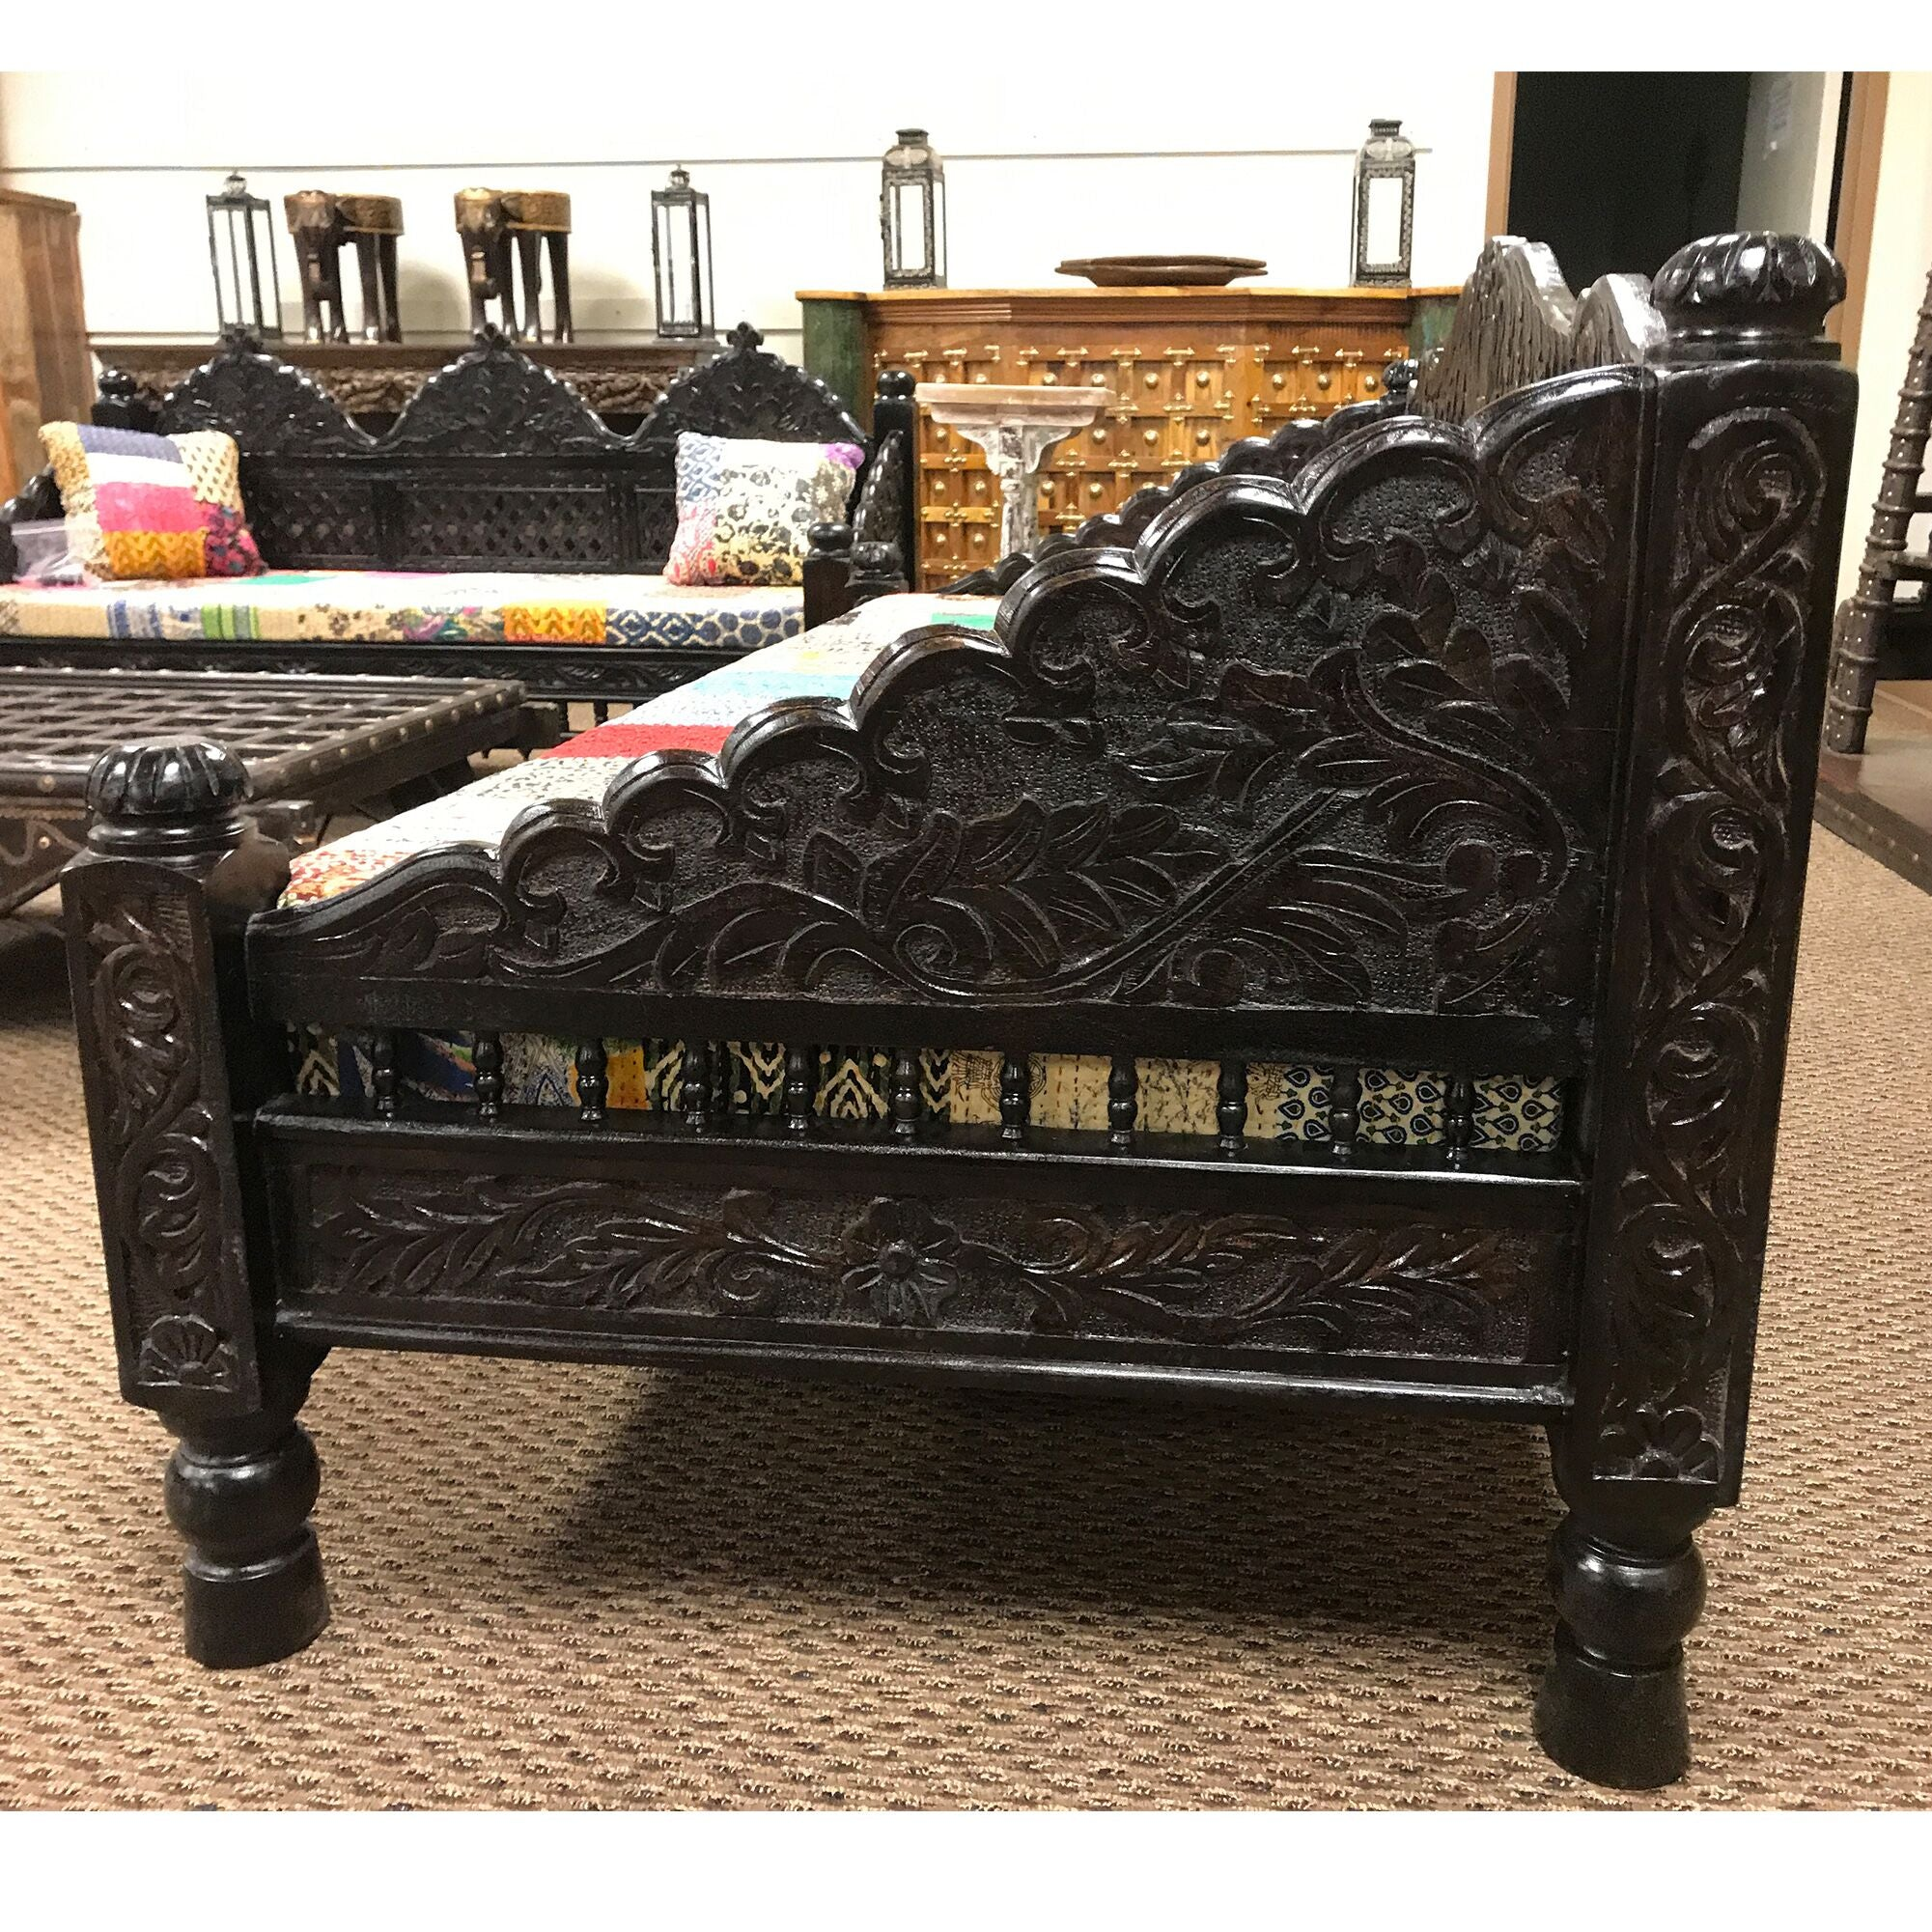 Wondrous Antique Rustic Ornate Bed Sofa Quilt Cushion And Cover Gmtry Best Dining Table And Chair Ideas Images Gmtryco